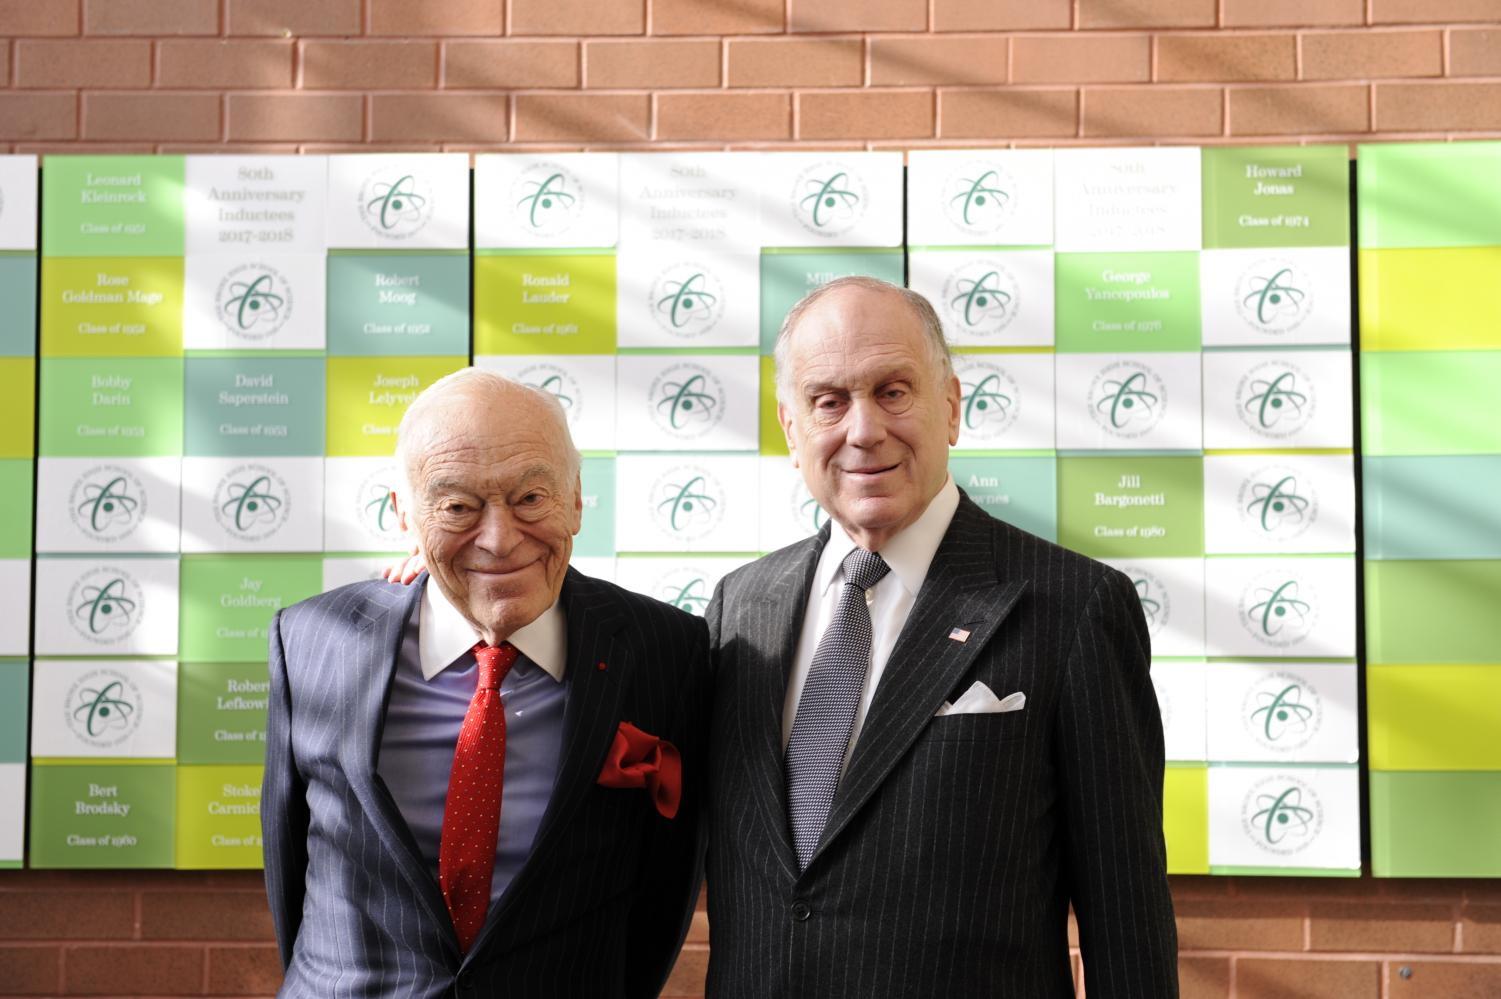 The Lauder brothers pose in front of the Bronx Science Hall of Fame  following their formal induction.